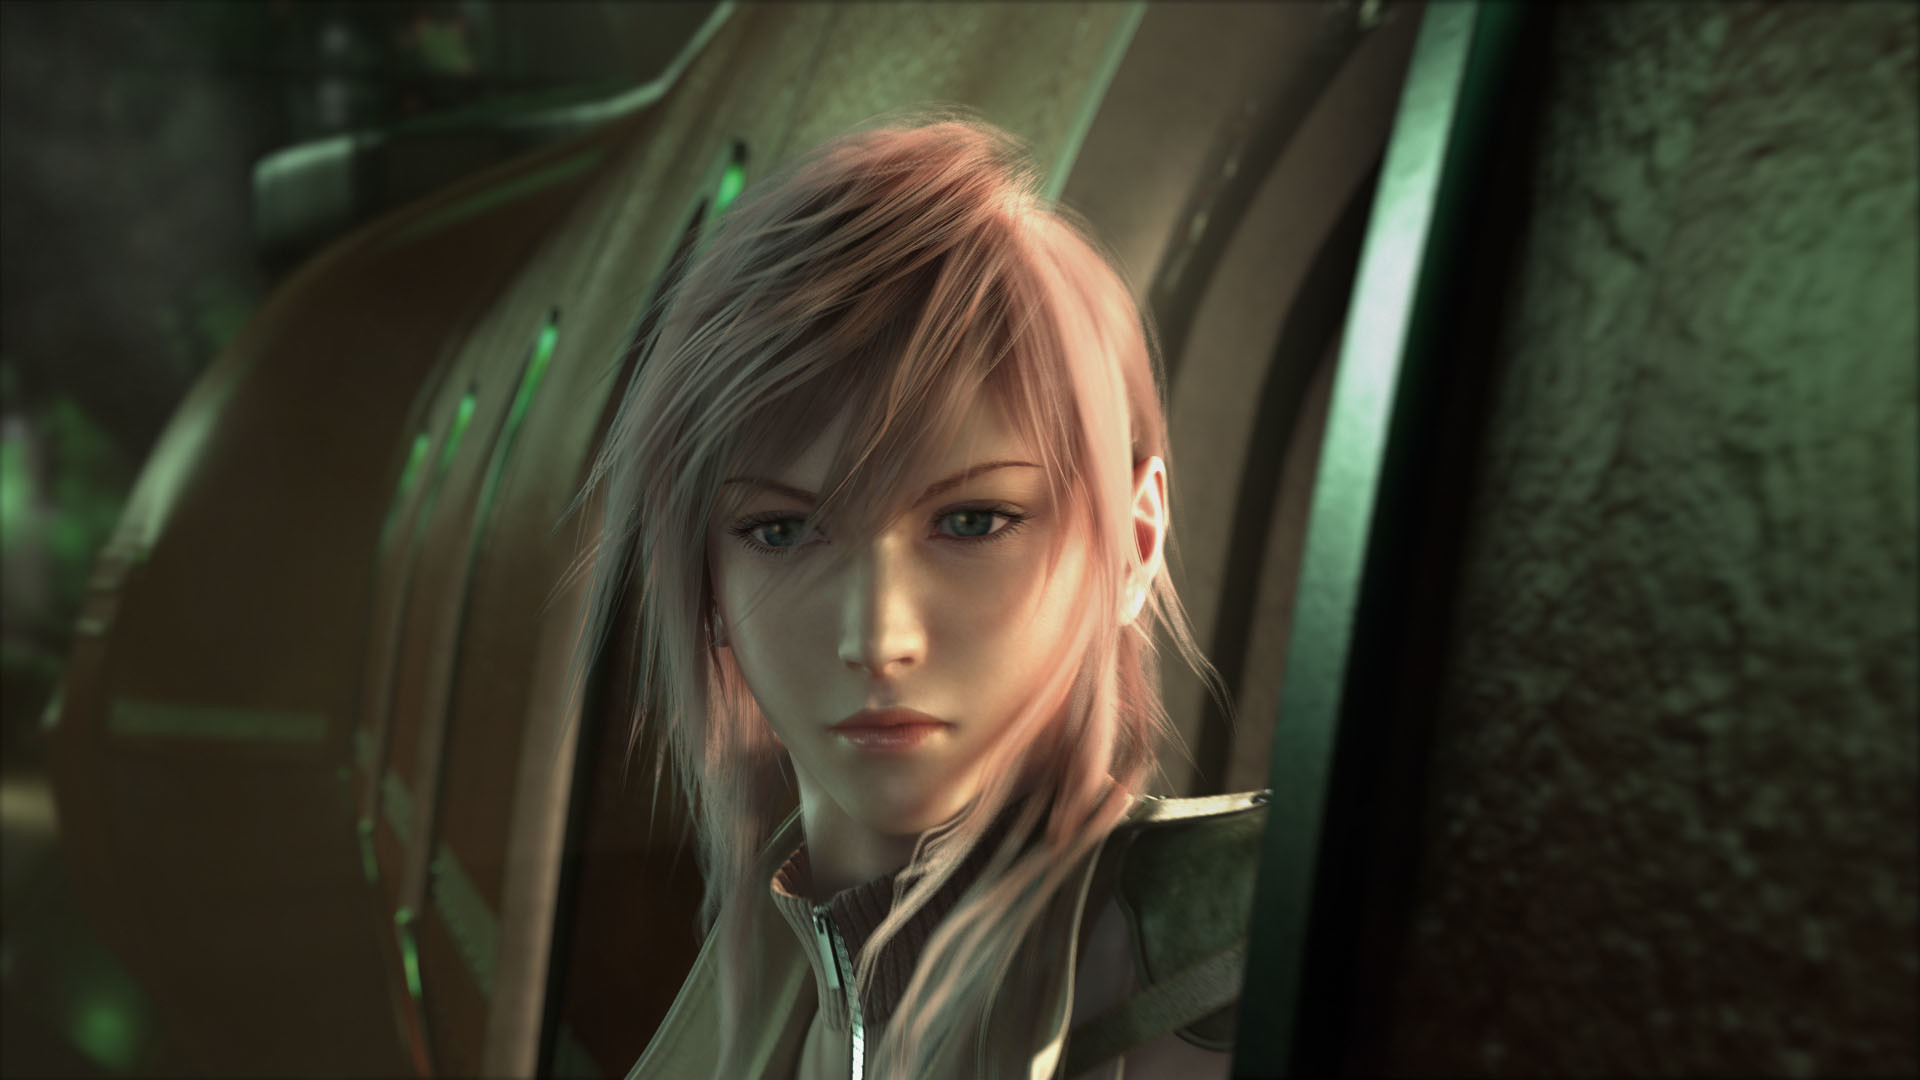 1920x1080 previous final fantasy 13 wallpaper. Lightning Looking Out The Train